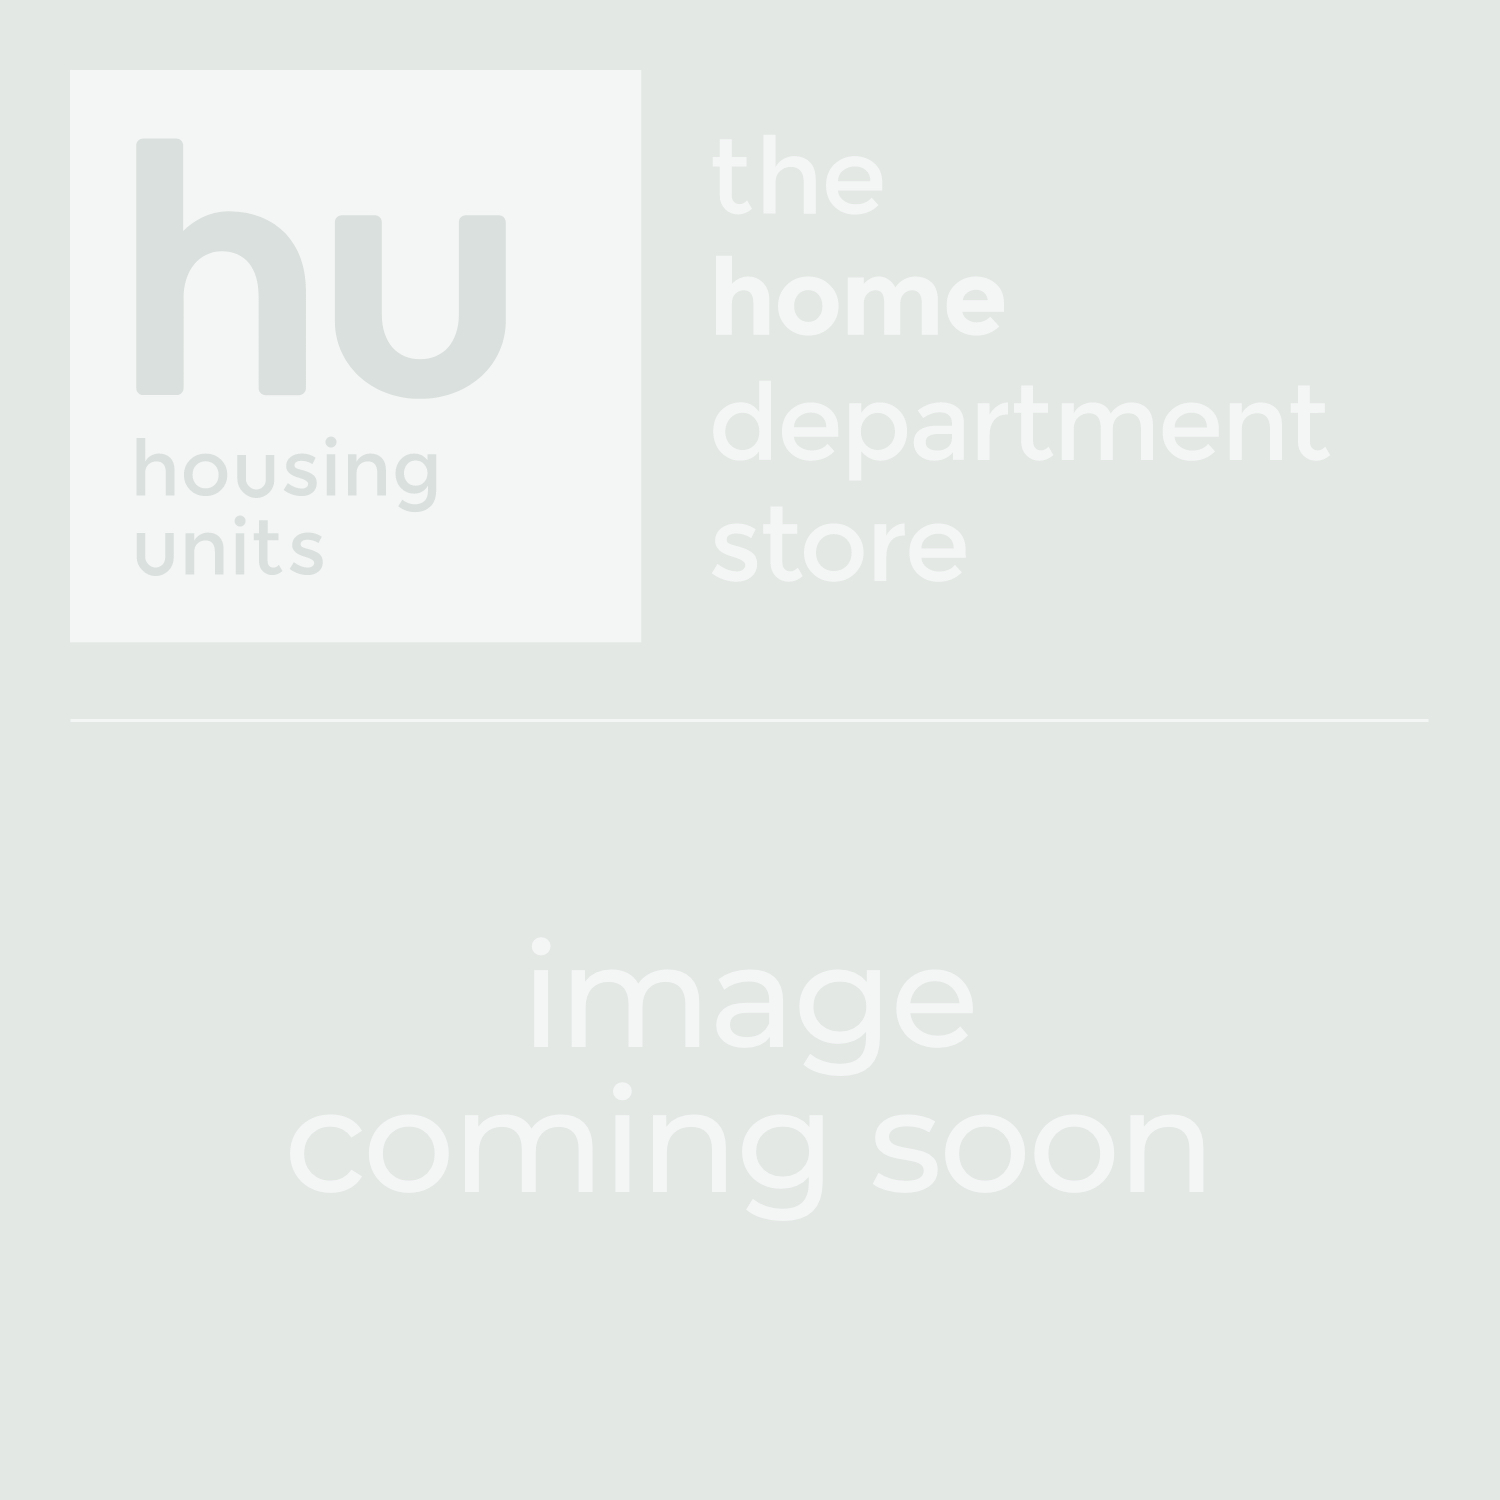 Lonnie Rust Velvet Armchair - Displayed With Fitz Stool (Sold Separately) & Scatter Cushion (not Included) | Housing Units